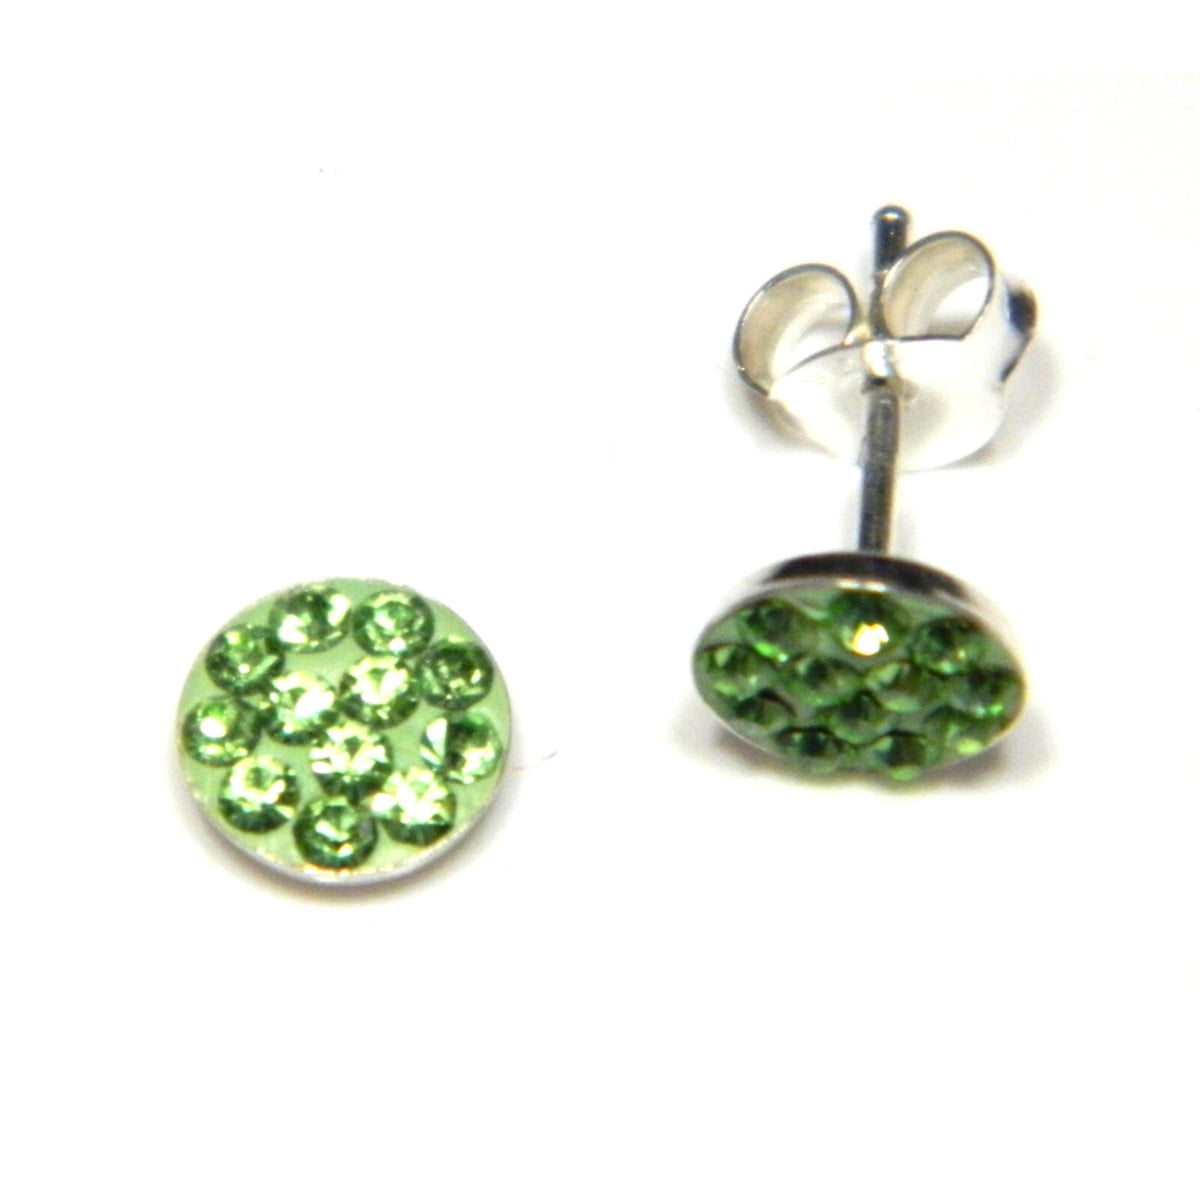 6 mm green coloured crystal round stud earrings in sterling silver